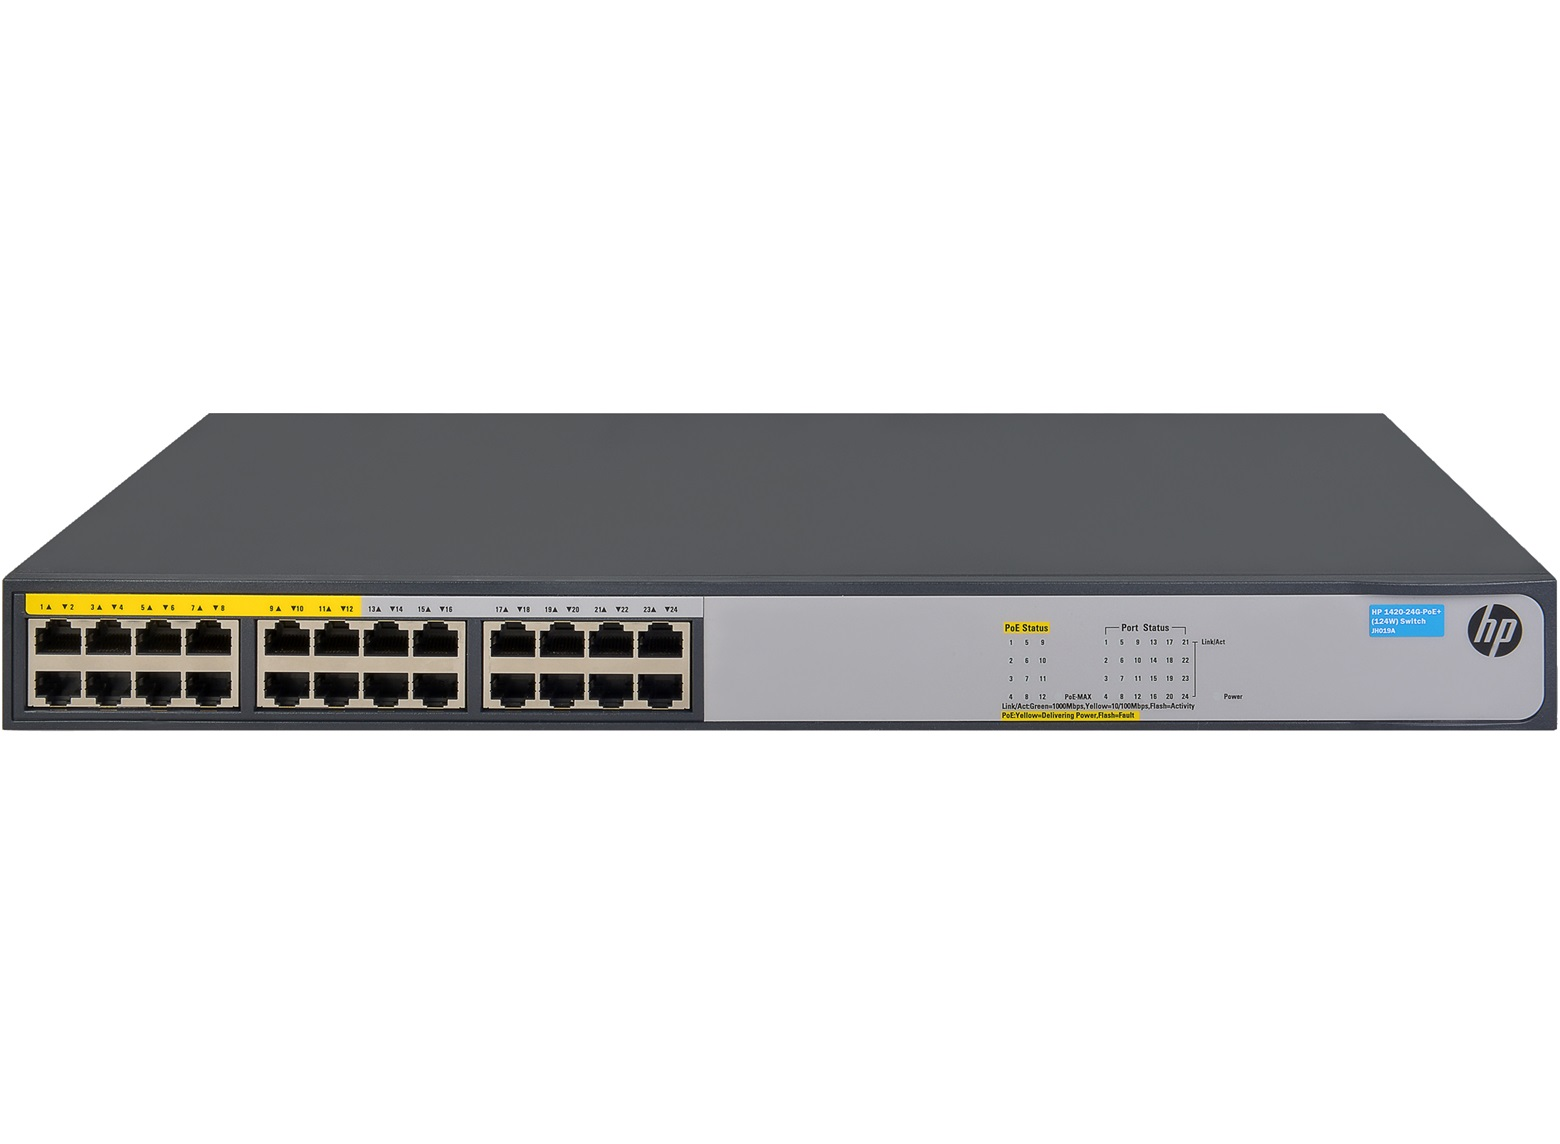 HPE 1420 24G PoE+ (124W) Switch